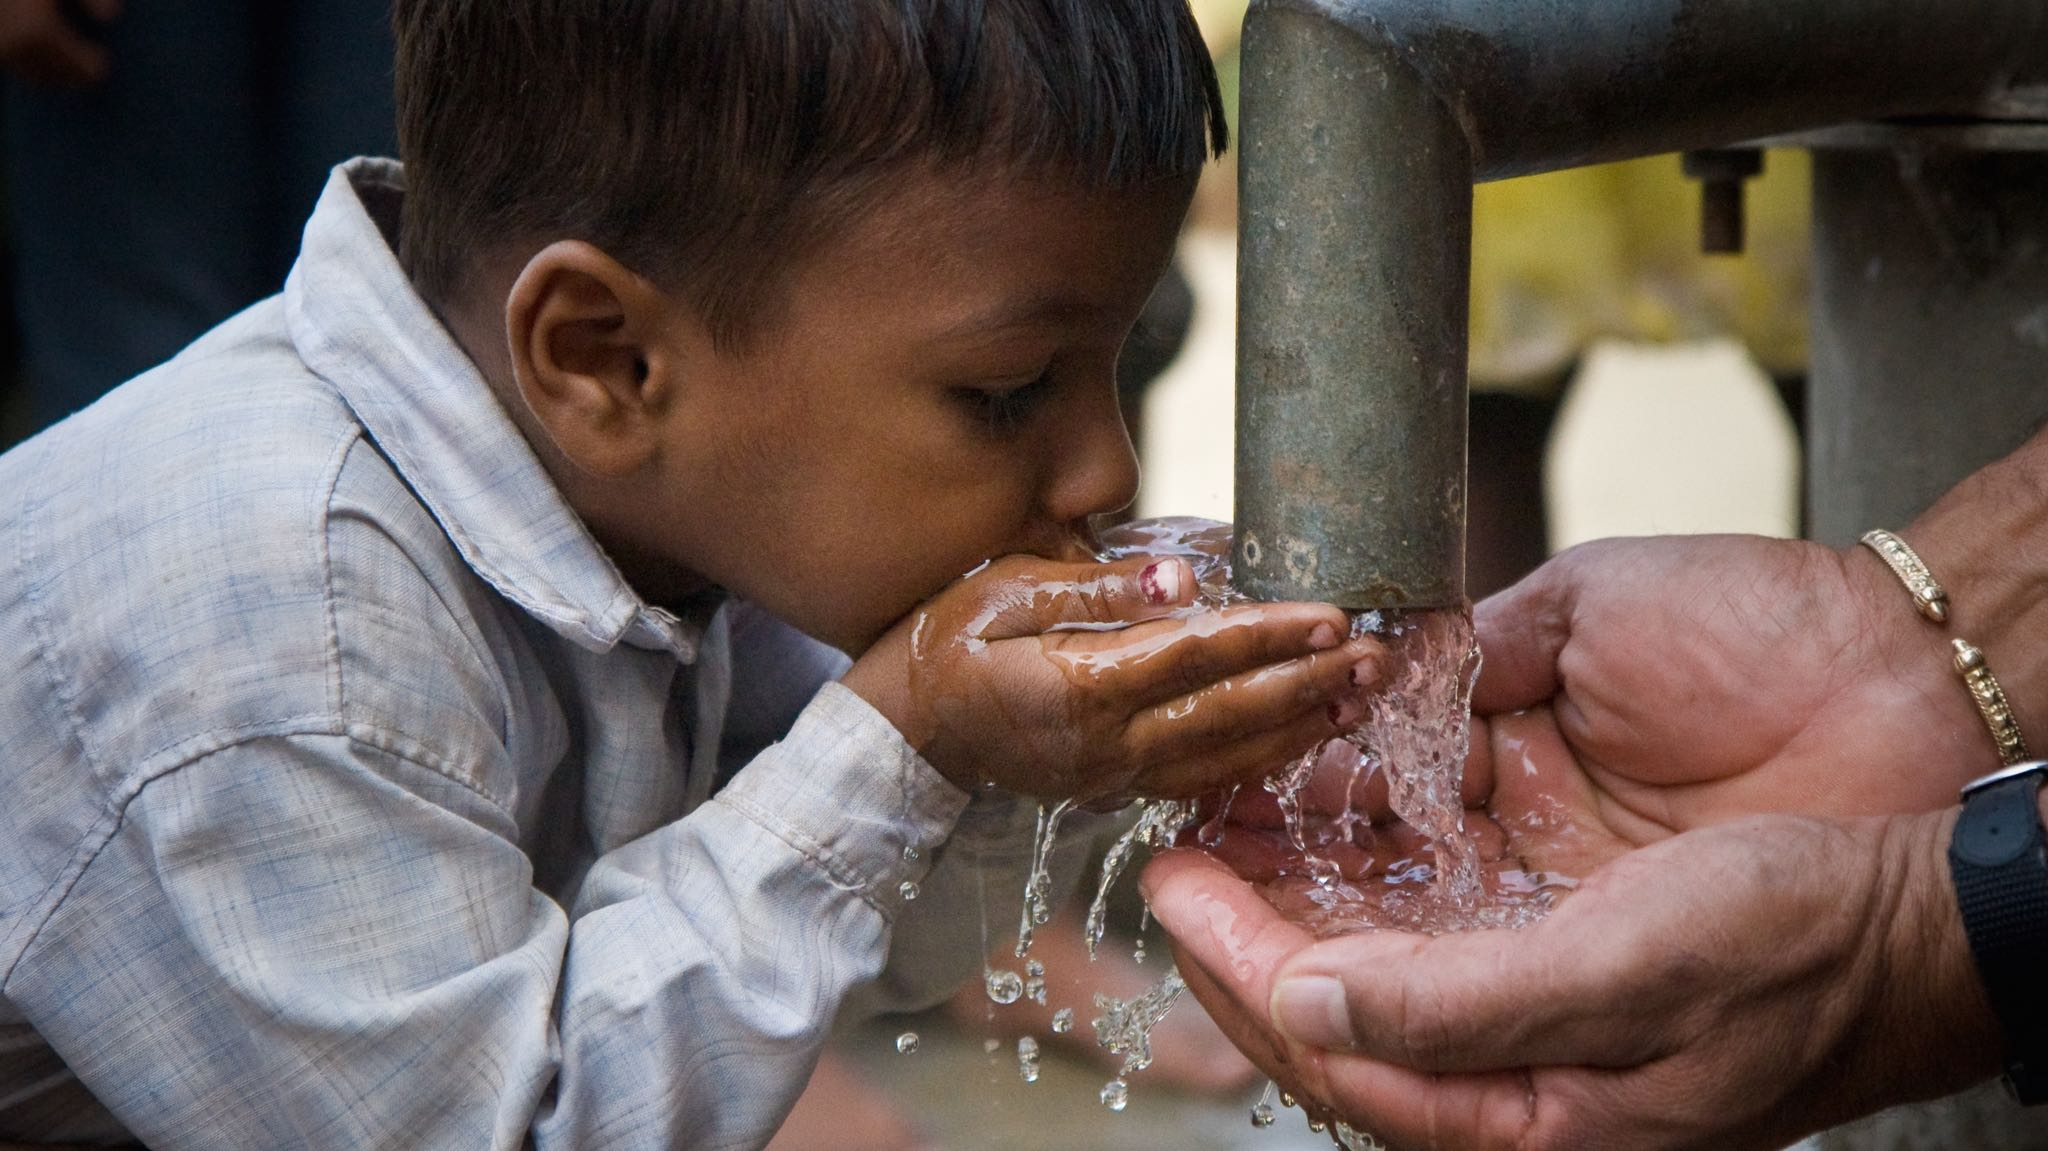 Clean, safe water